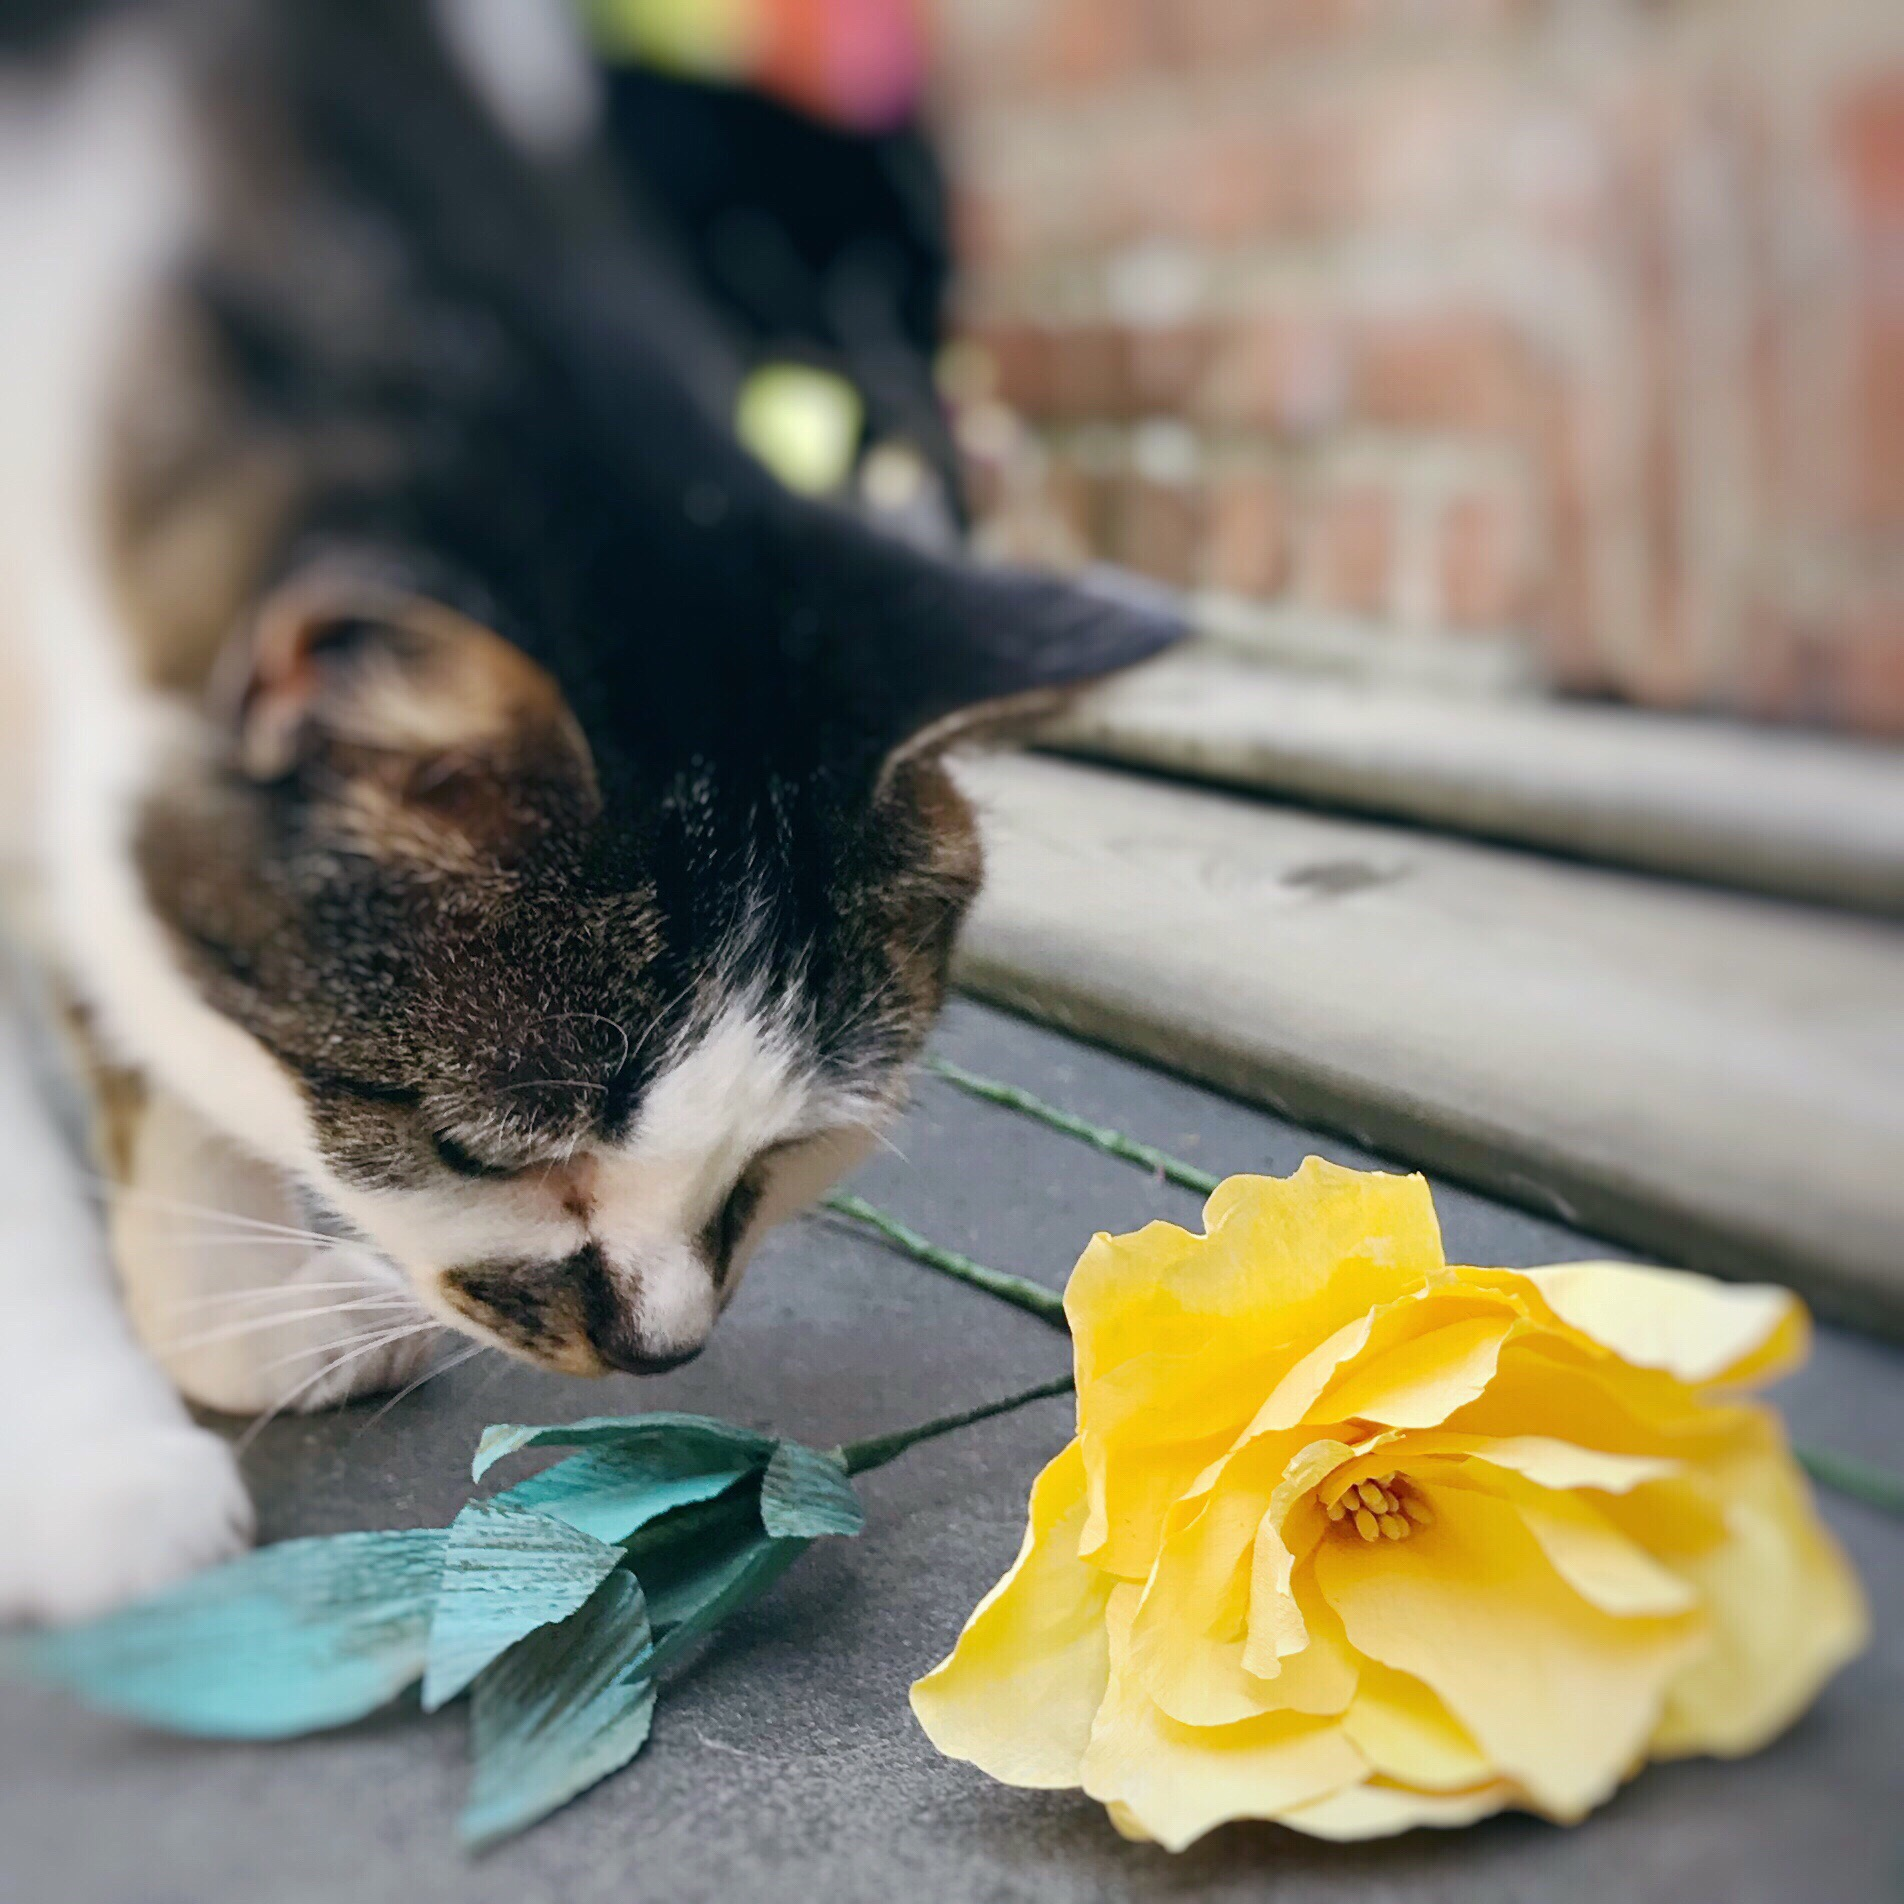 Lately, I really enjoy making paper flowers such as peonies and dahlias. It seems my cat Emma likes them too!